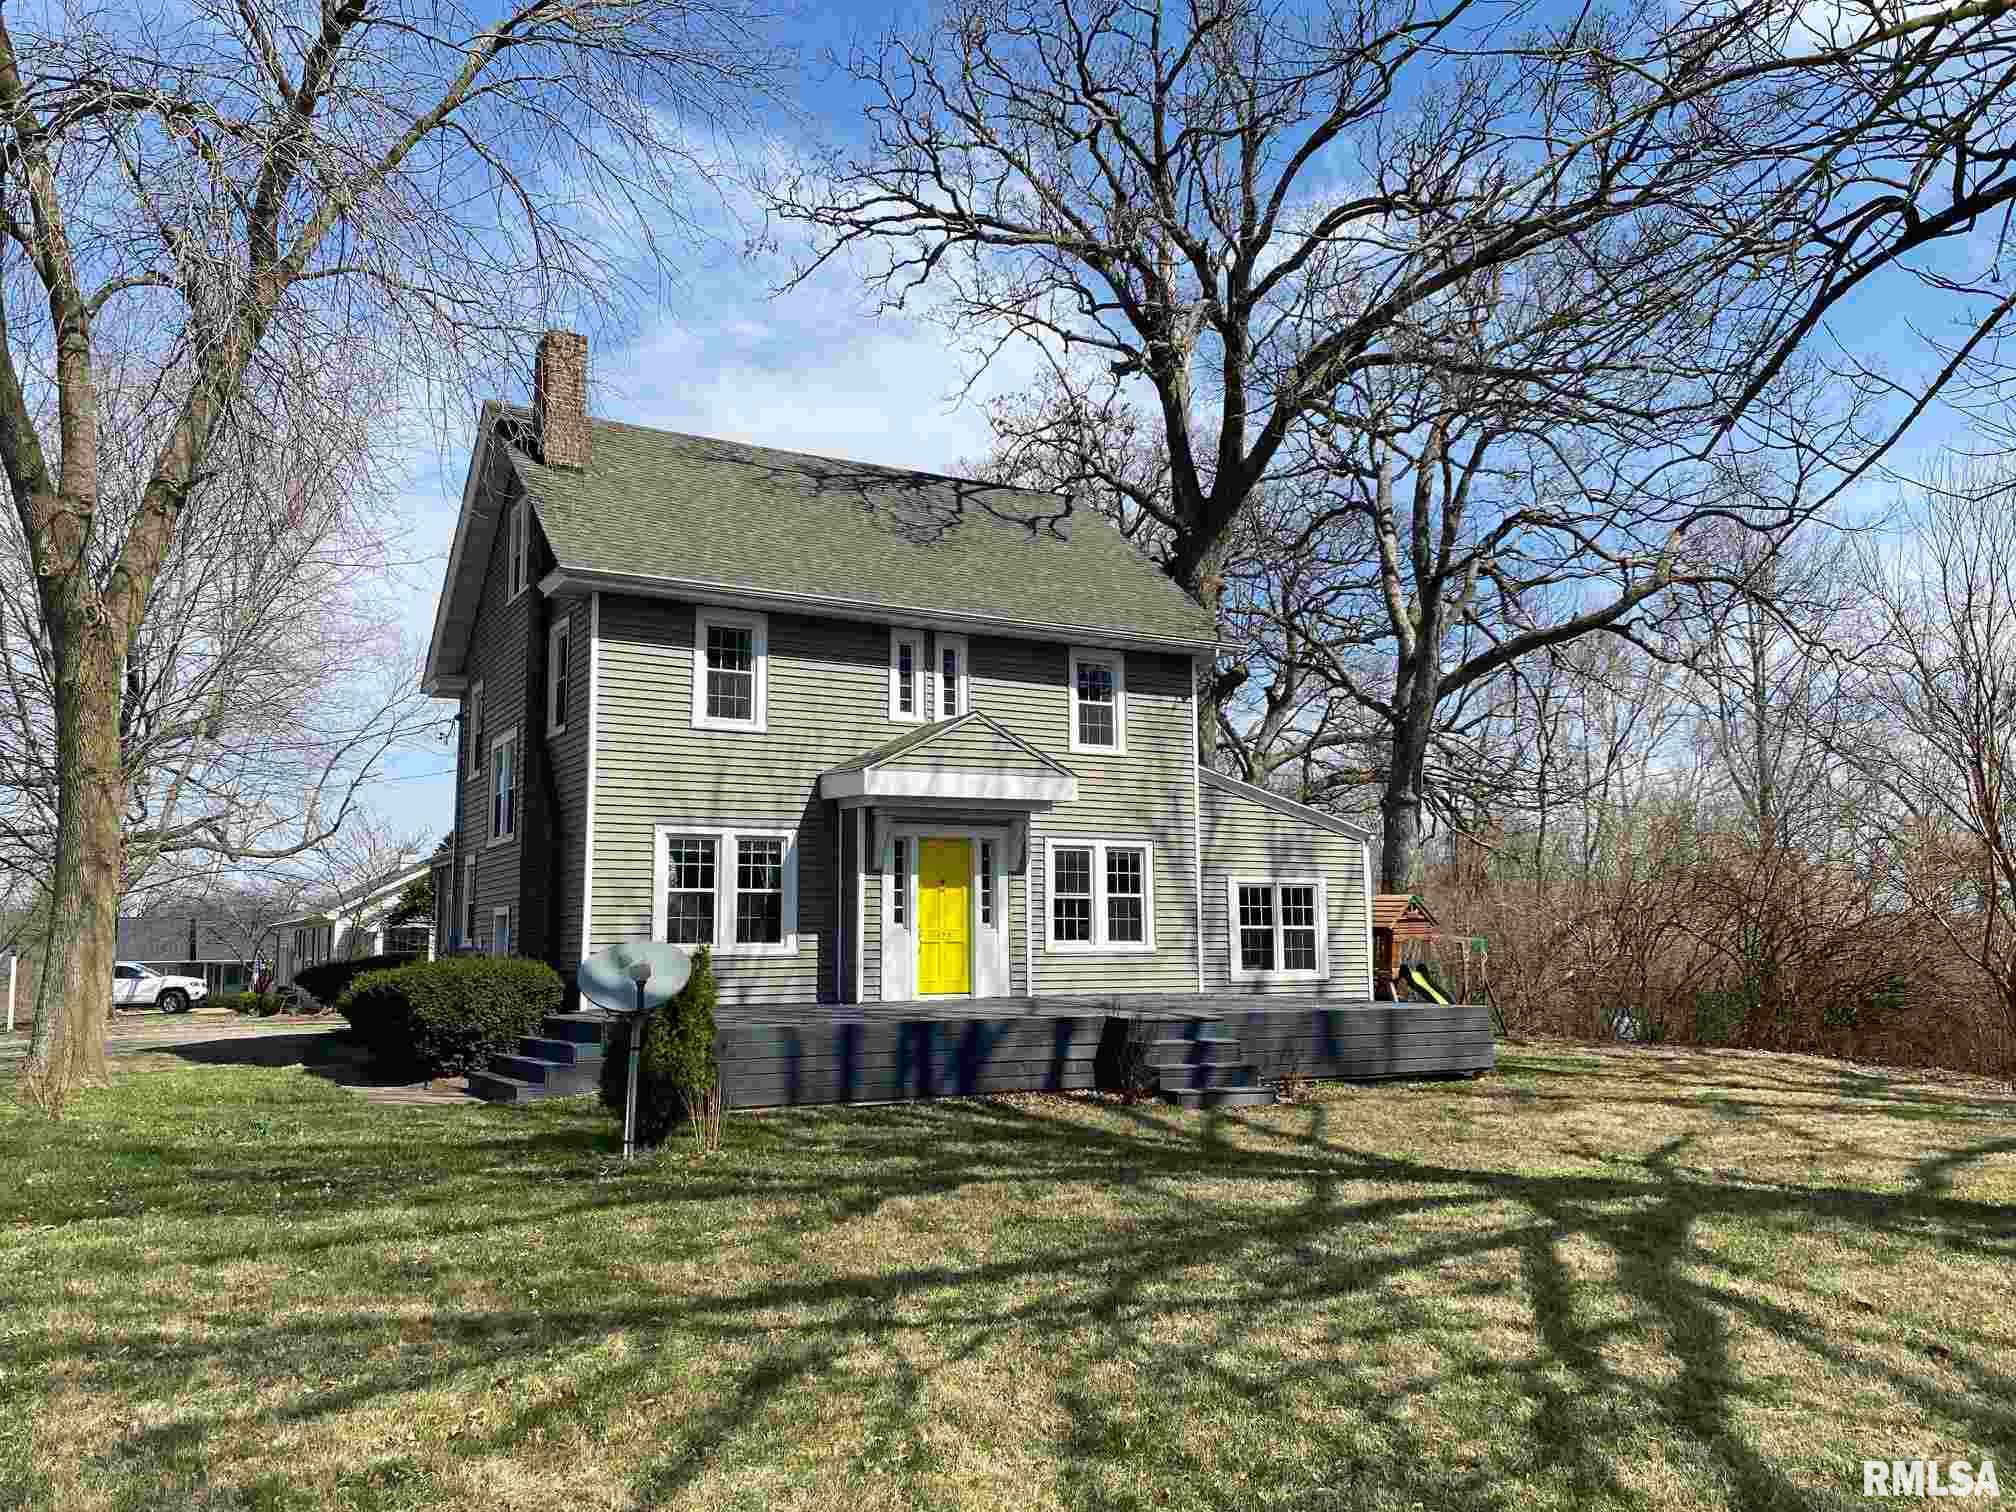 323 W RUTLEDGE Property Photo - Petersburg, IL real estate listing